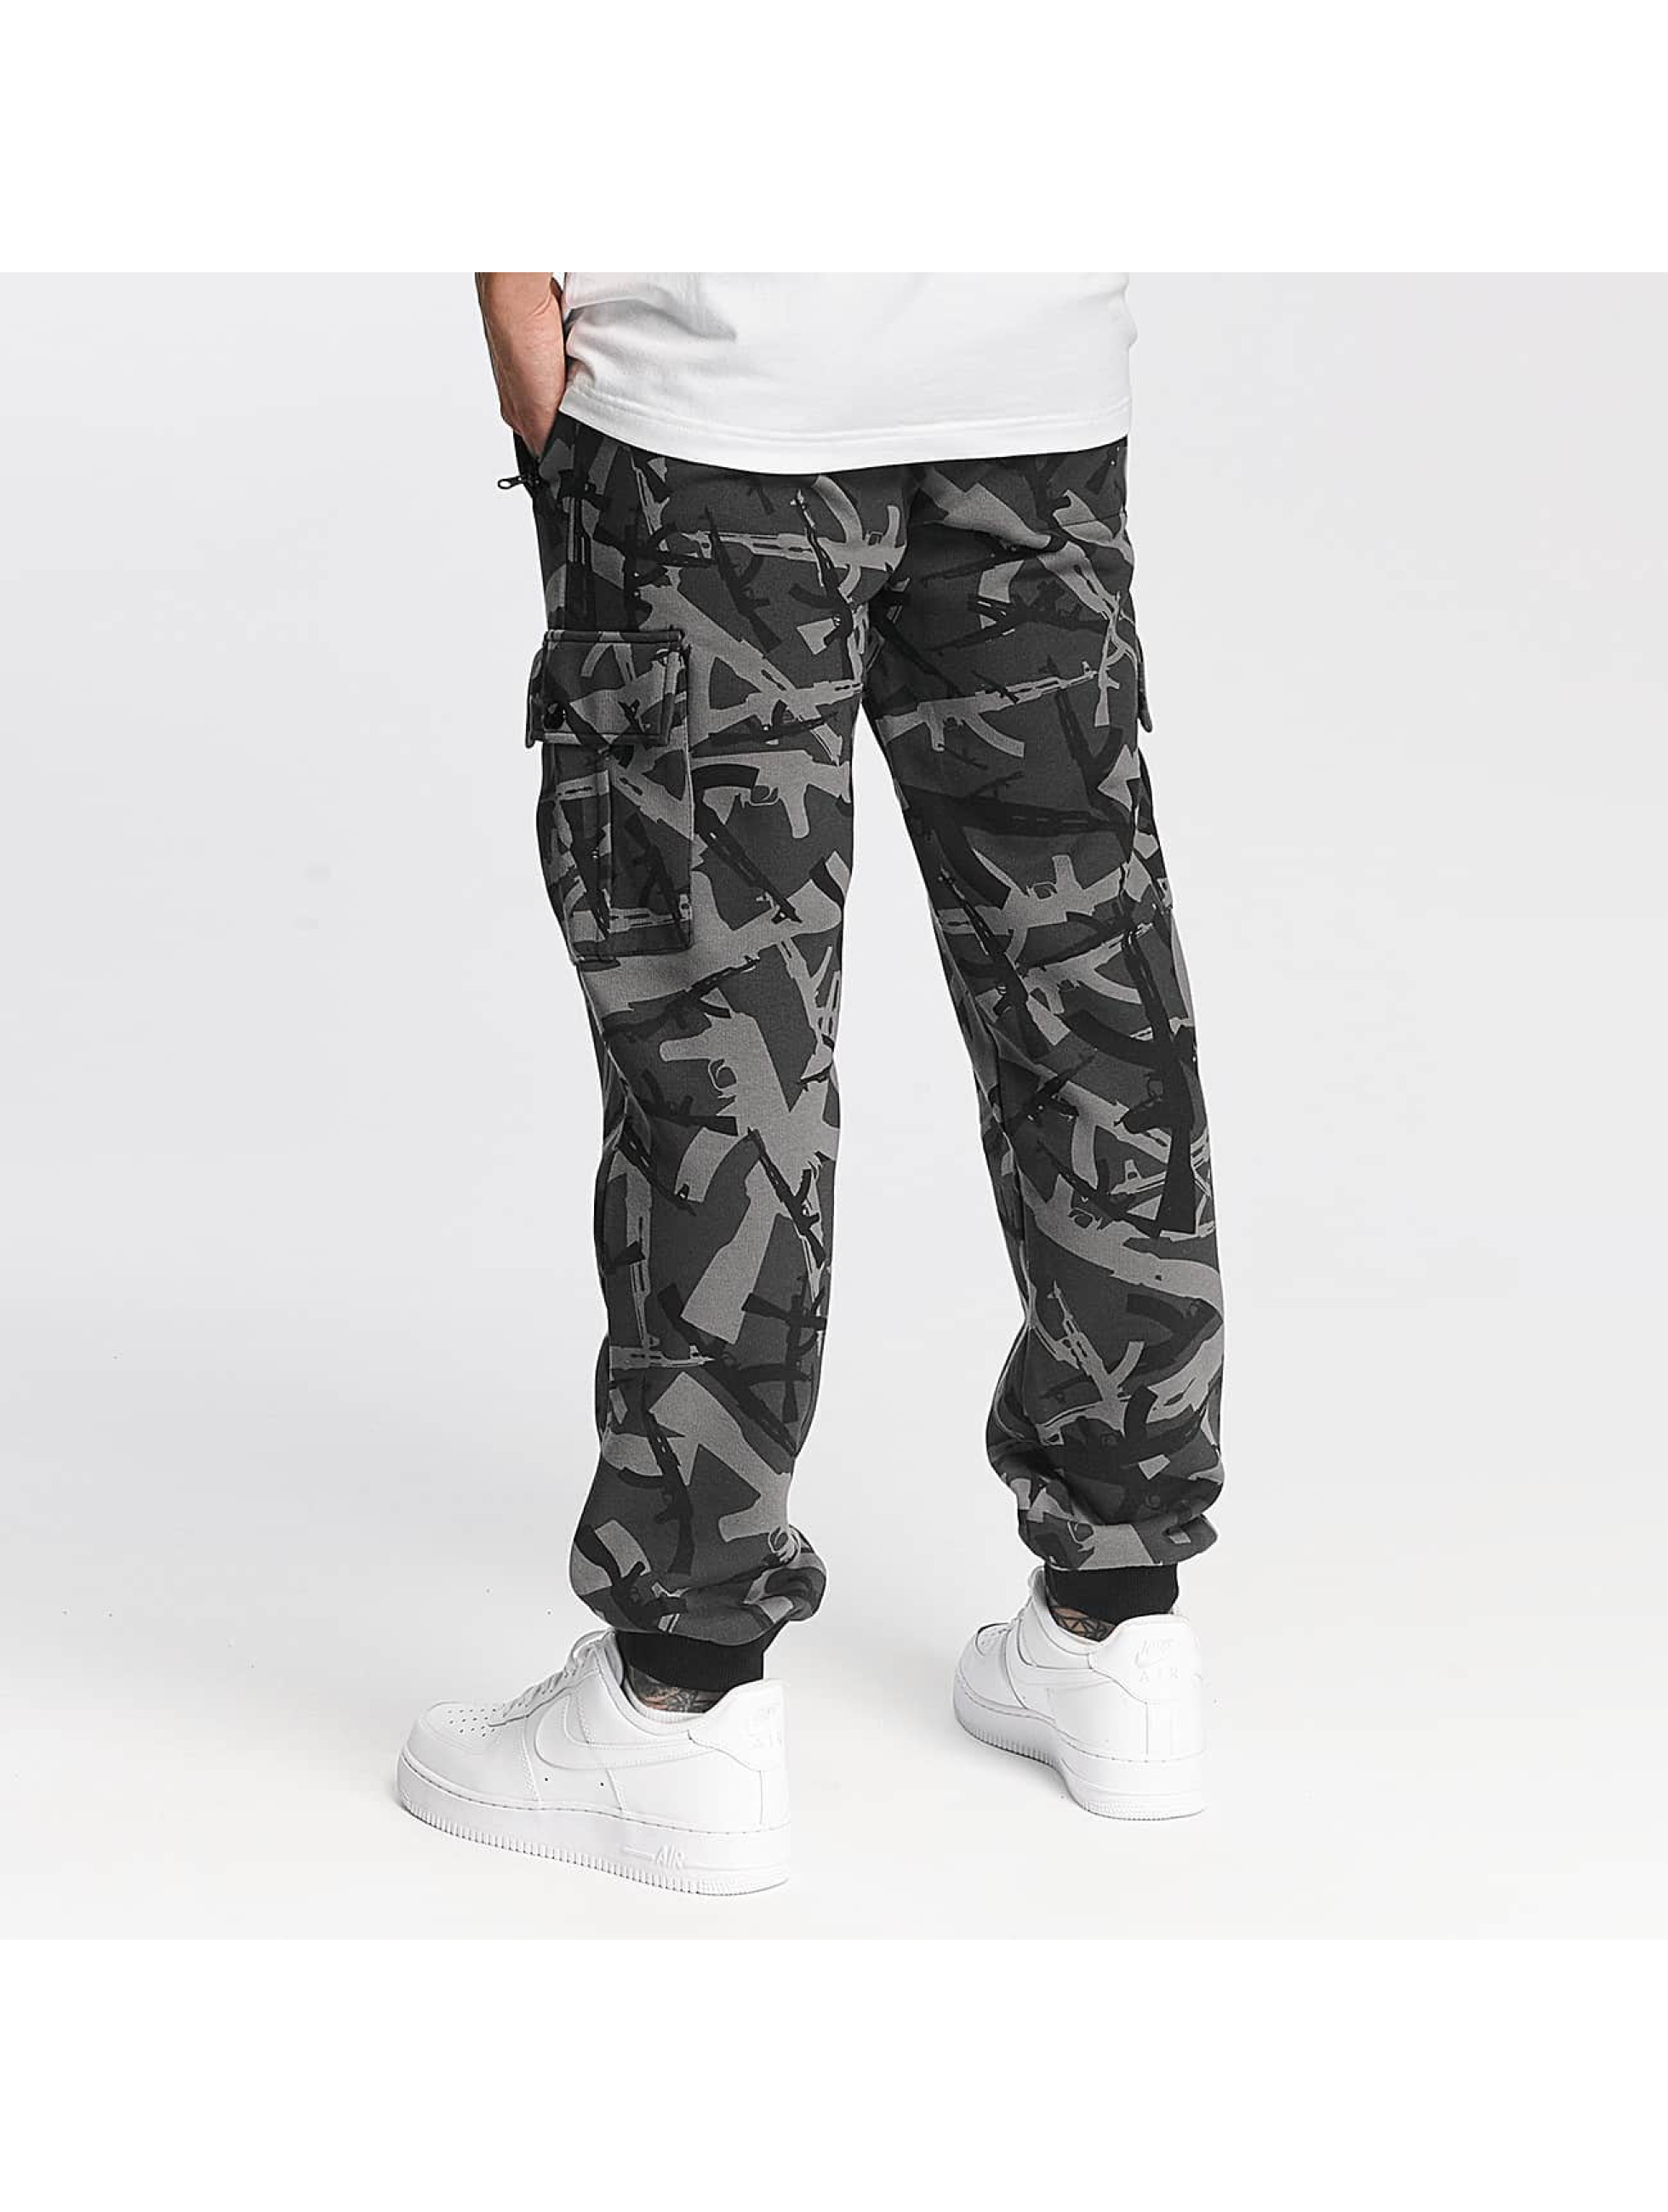 Pusher Apparel joggingbroek AK Camo camouflage